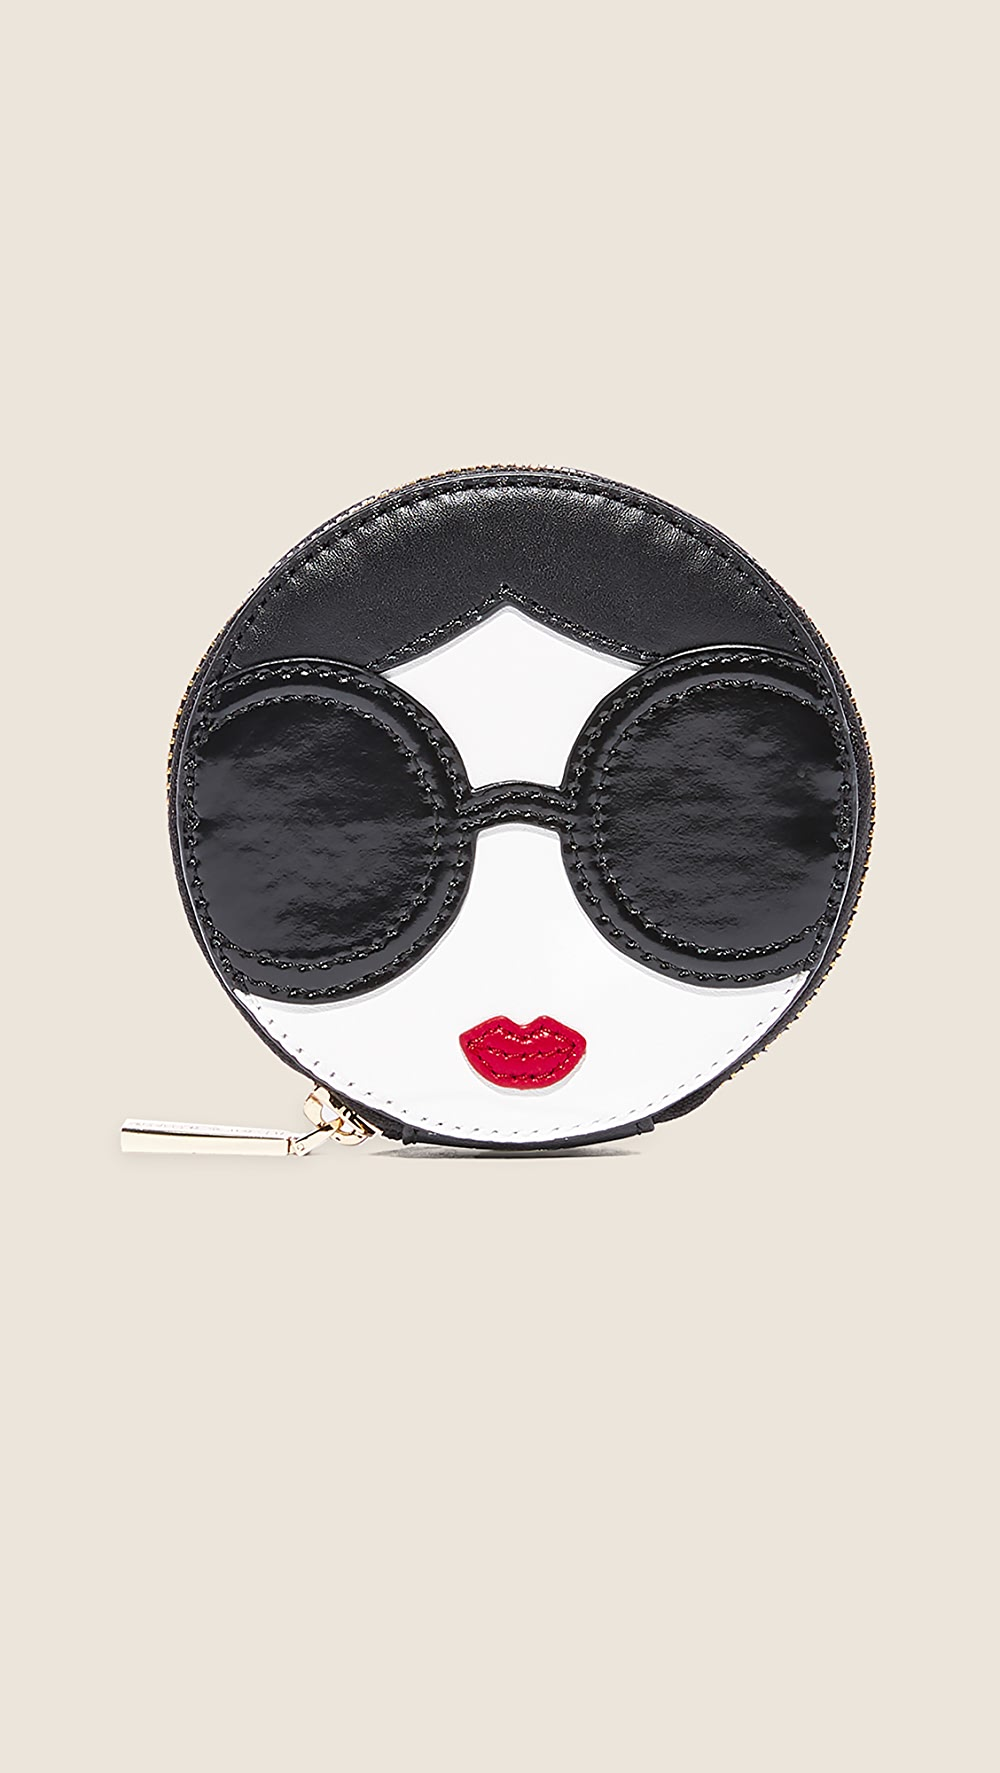 Smart Alice + Olivia - Stace Face Circular Coin Pouch Be Novel In Design